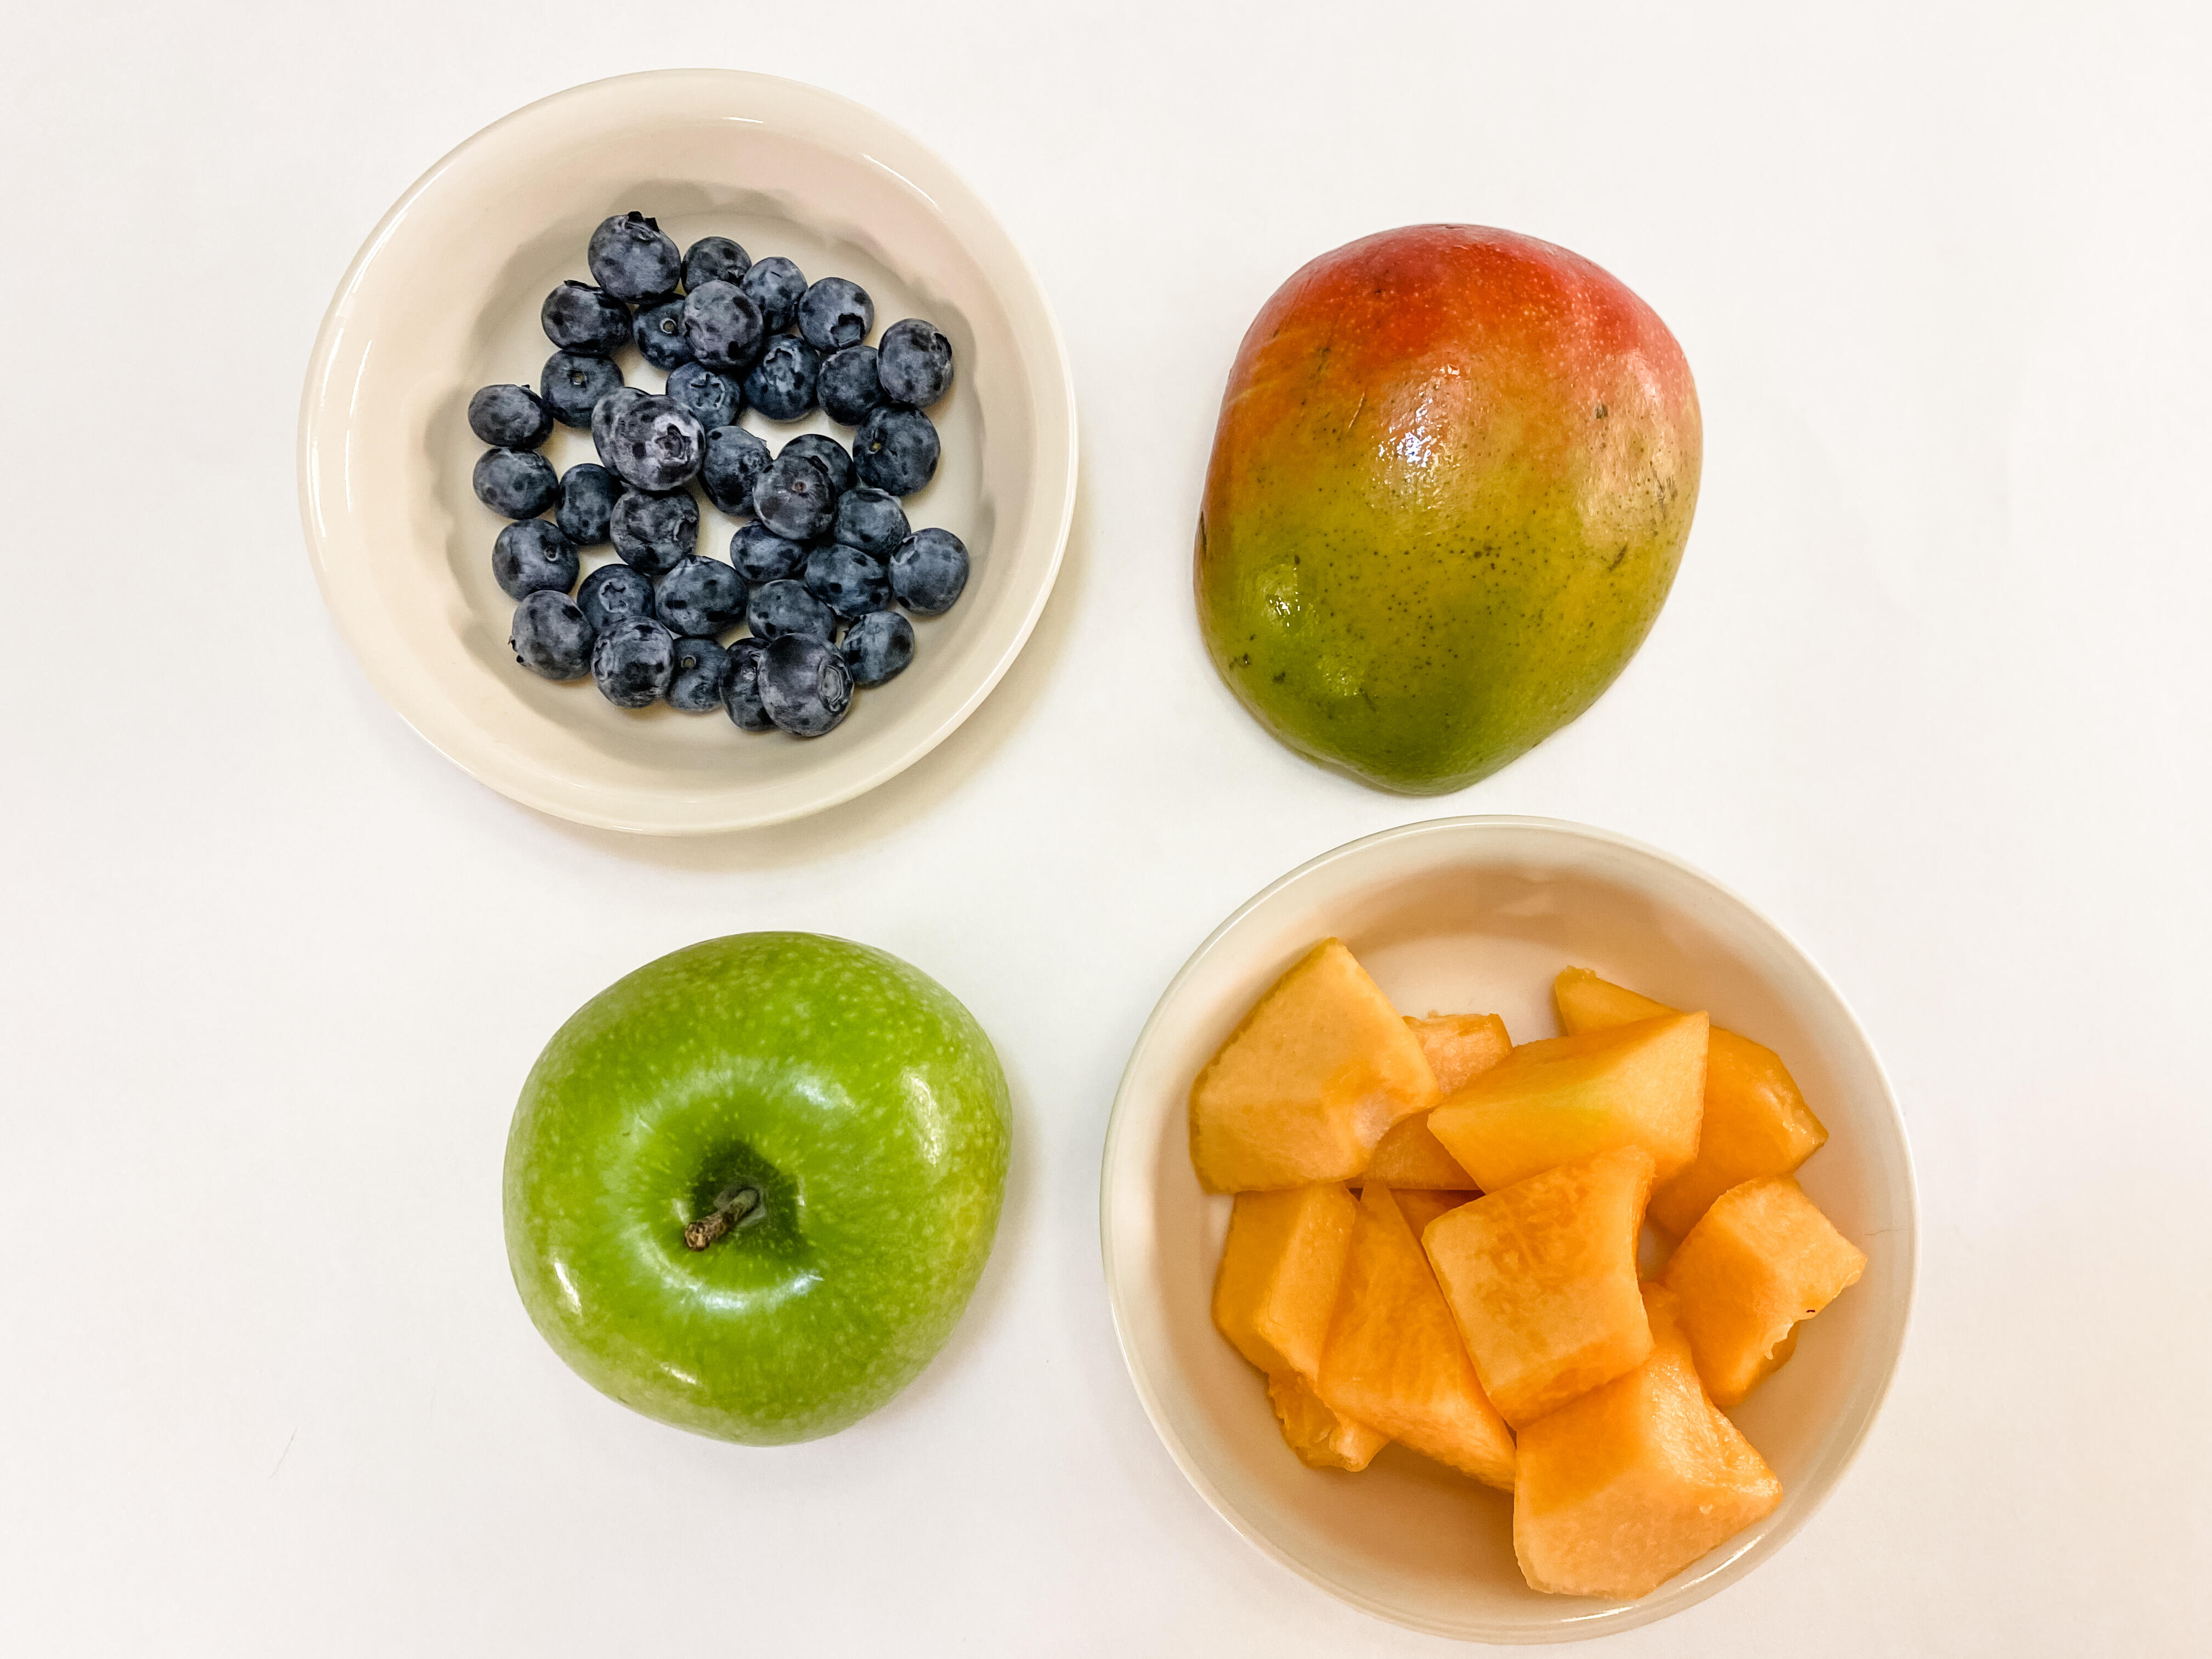 Five servings of fruit: half a cup of blueberries, half a mango, an apple, a cup of melon